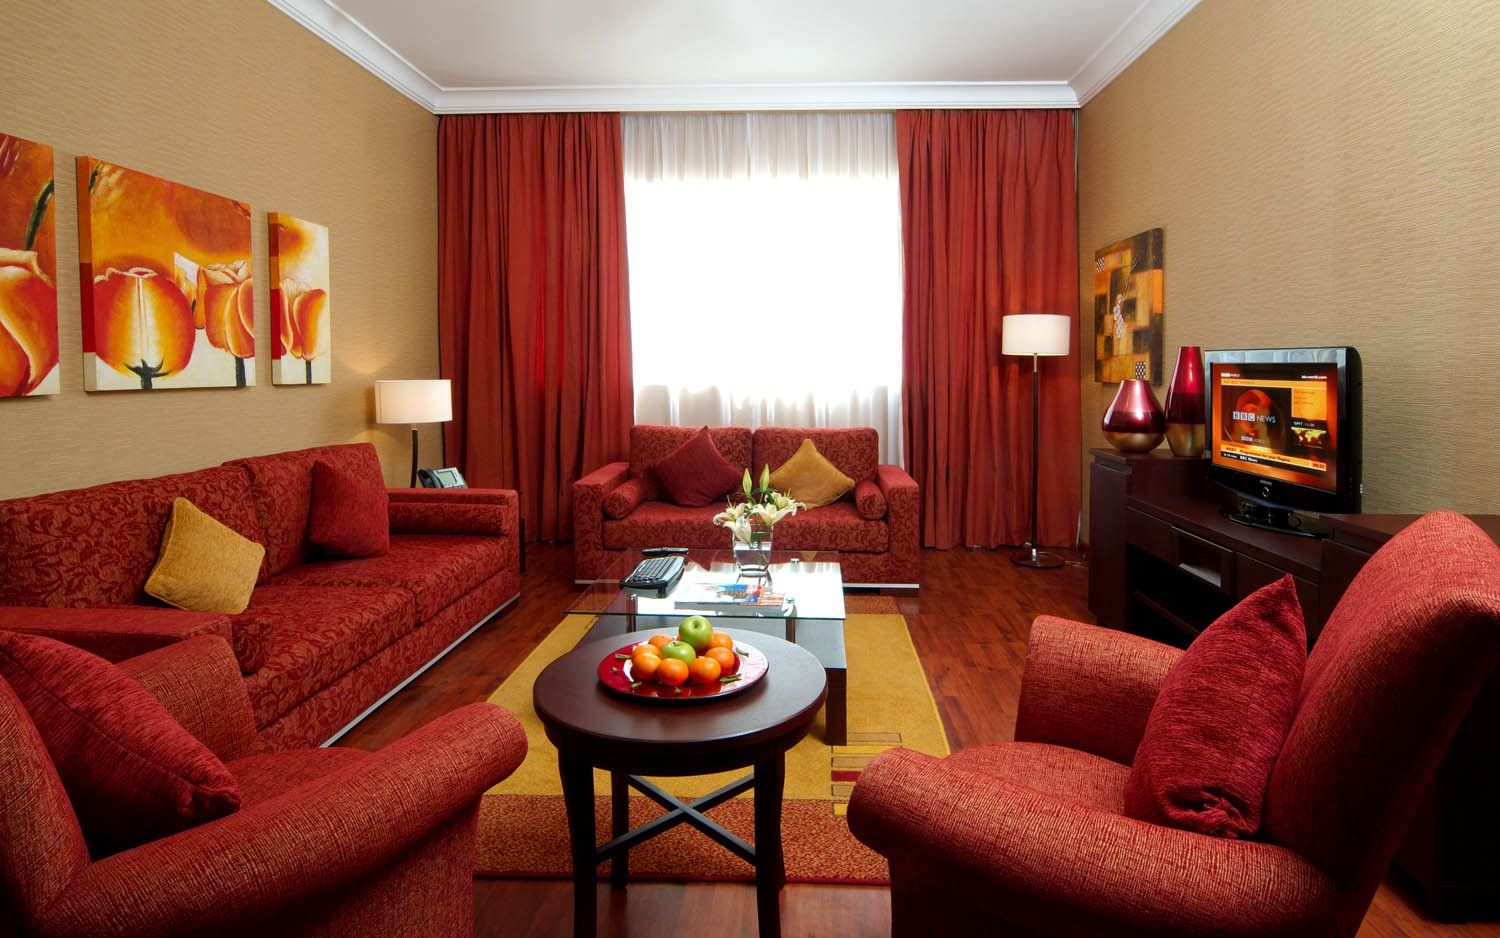 unbelievable red living room chairs. Great Arabic living room with red sofa and yellow walls  Red